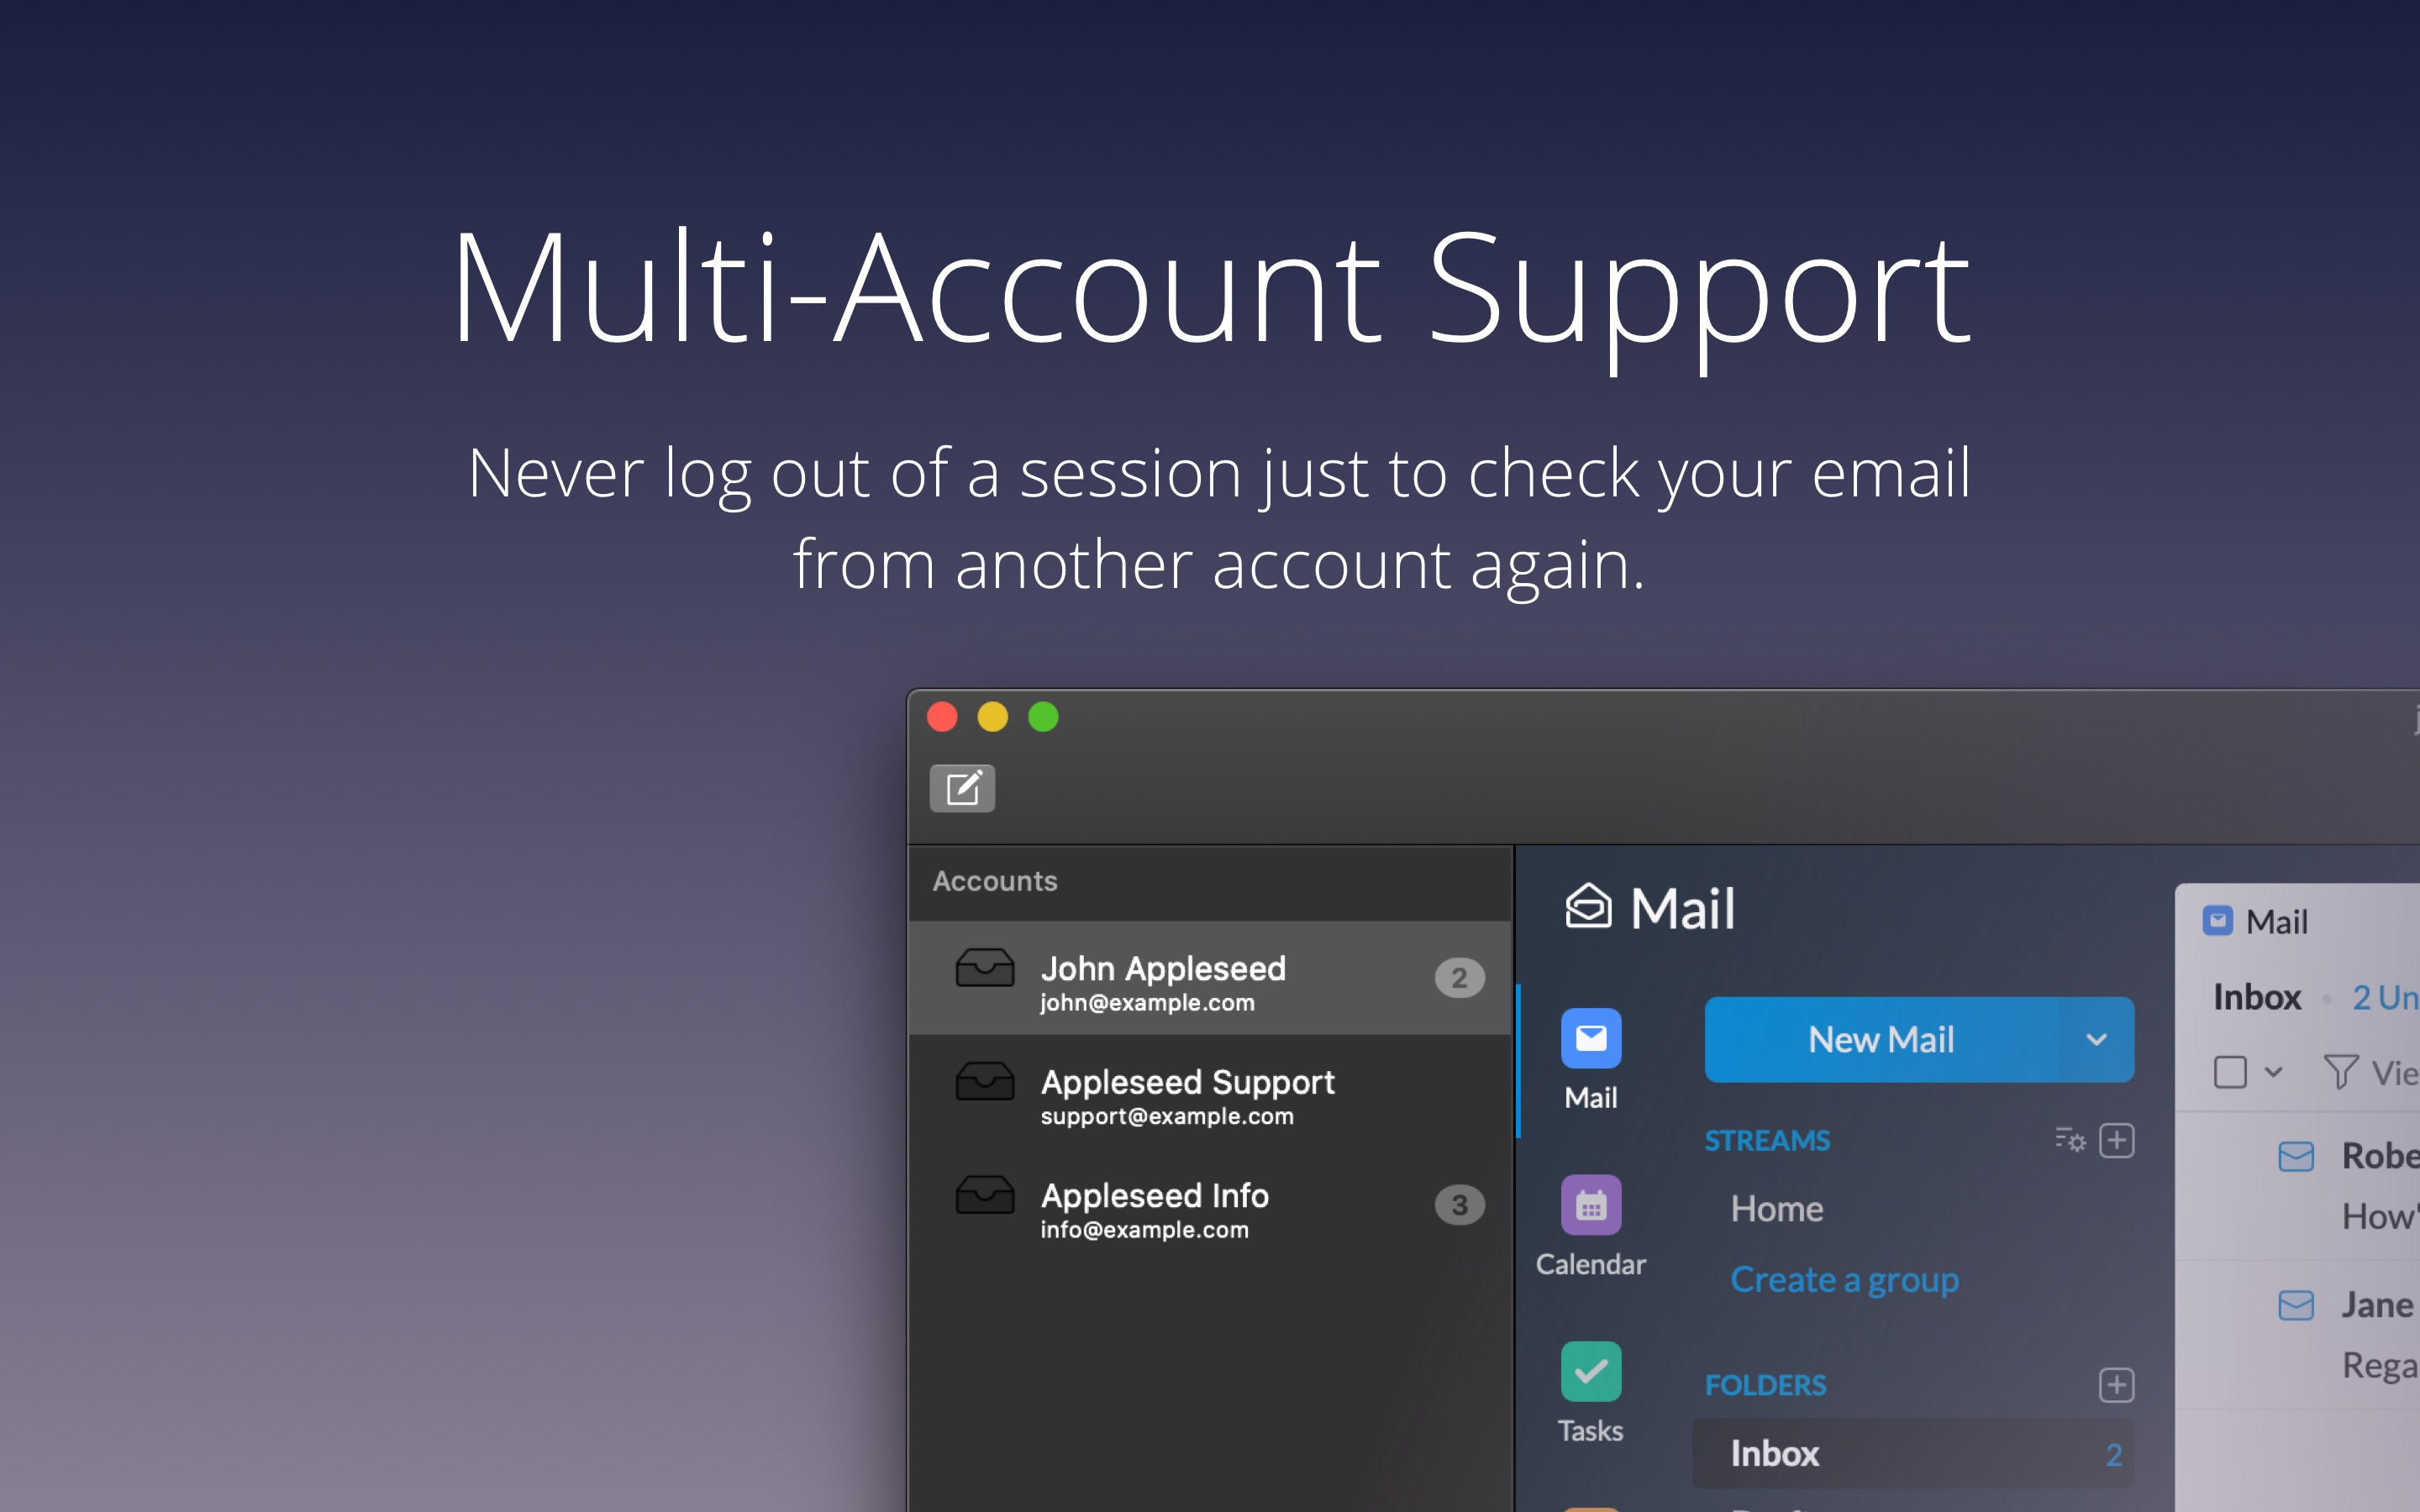 never log out of a session just to check your email from another account.